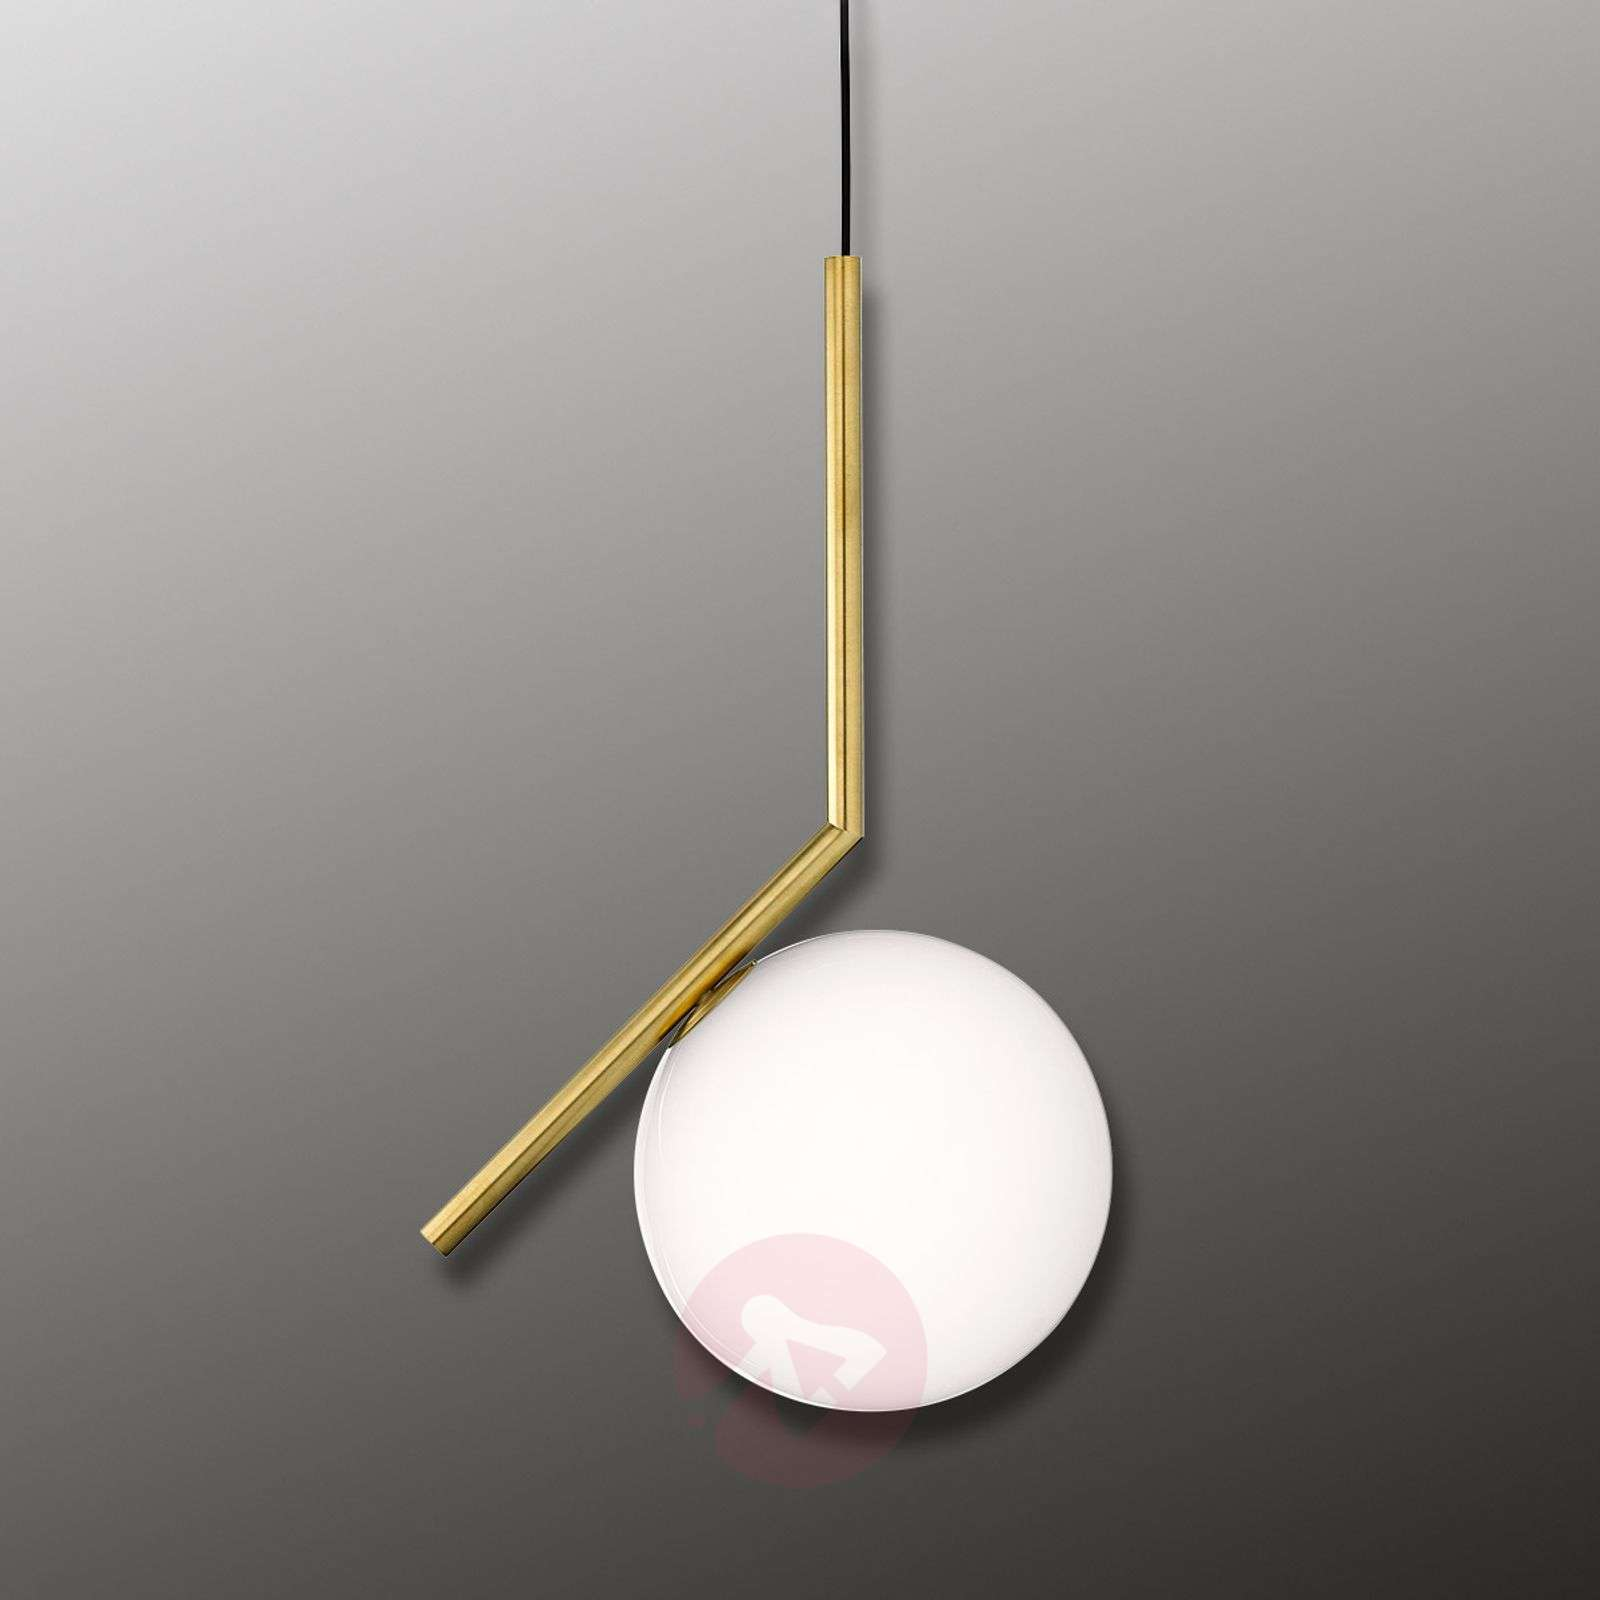 Ic s1 designer pendant lamp by flos for Flos lampade a sospensione